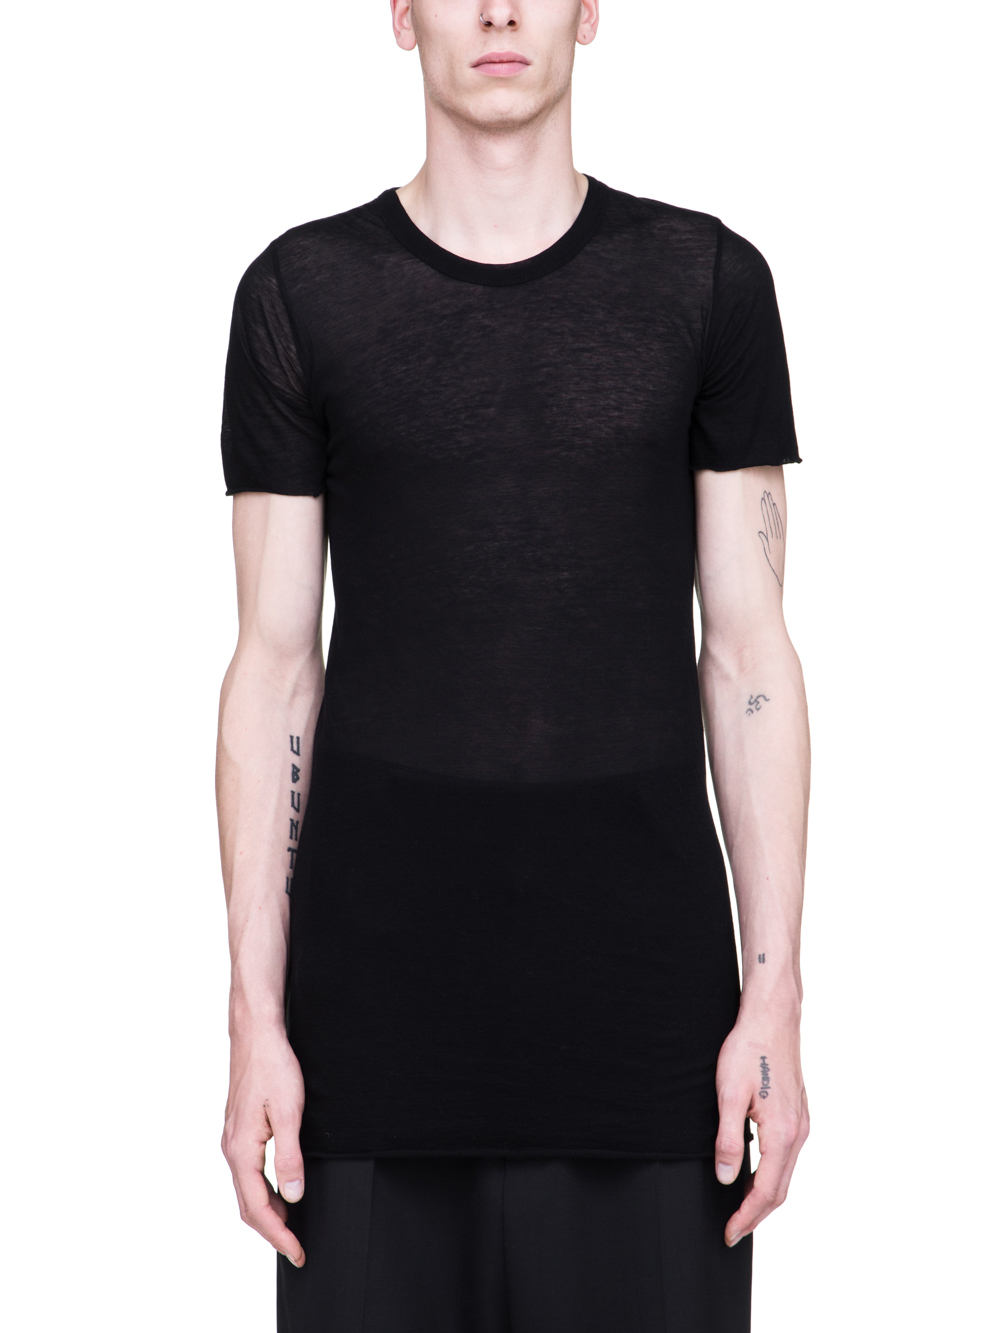 RICK OWENS SS19 BABEL BASIC SHORTSLEEVE TEE IN BLACK UNSTABLE COTTON